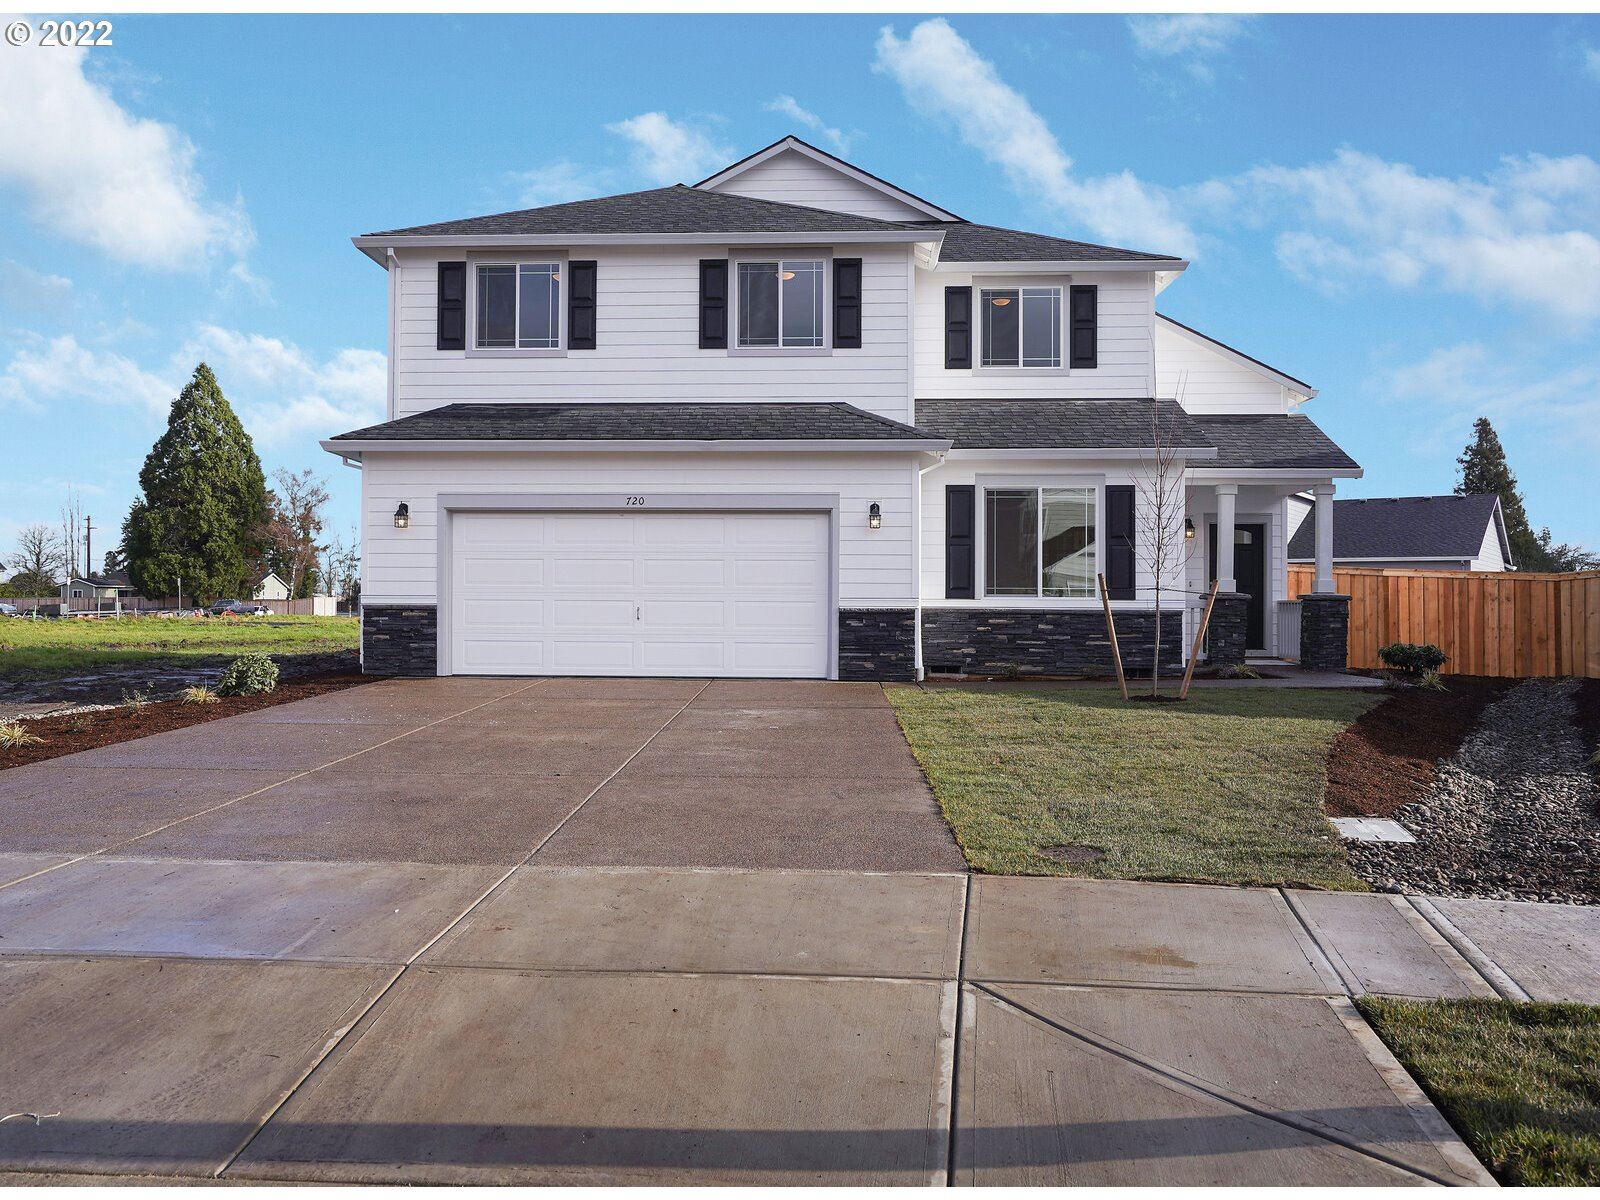 Photo of 1033 Winfield ST, Gervais, OR 97026 (MLS # 21679223)